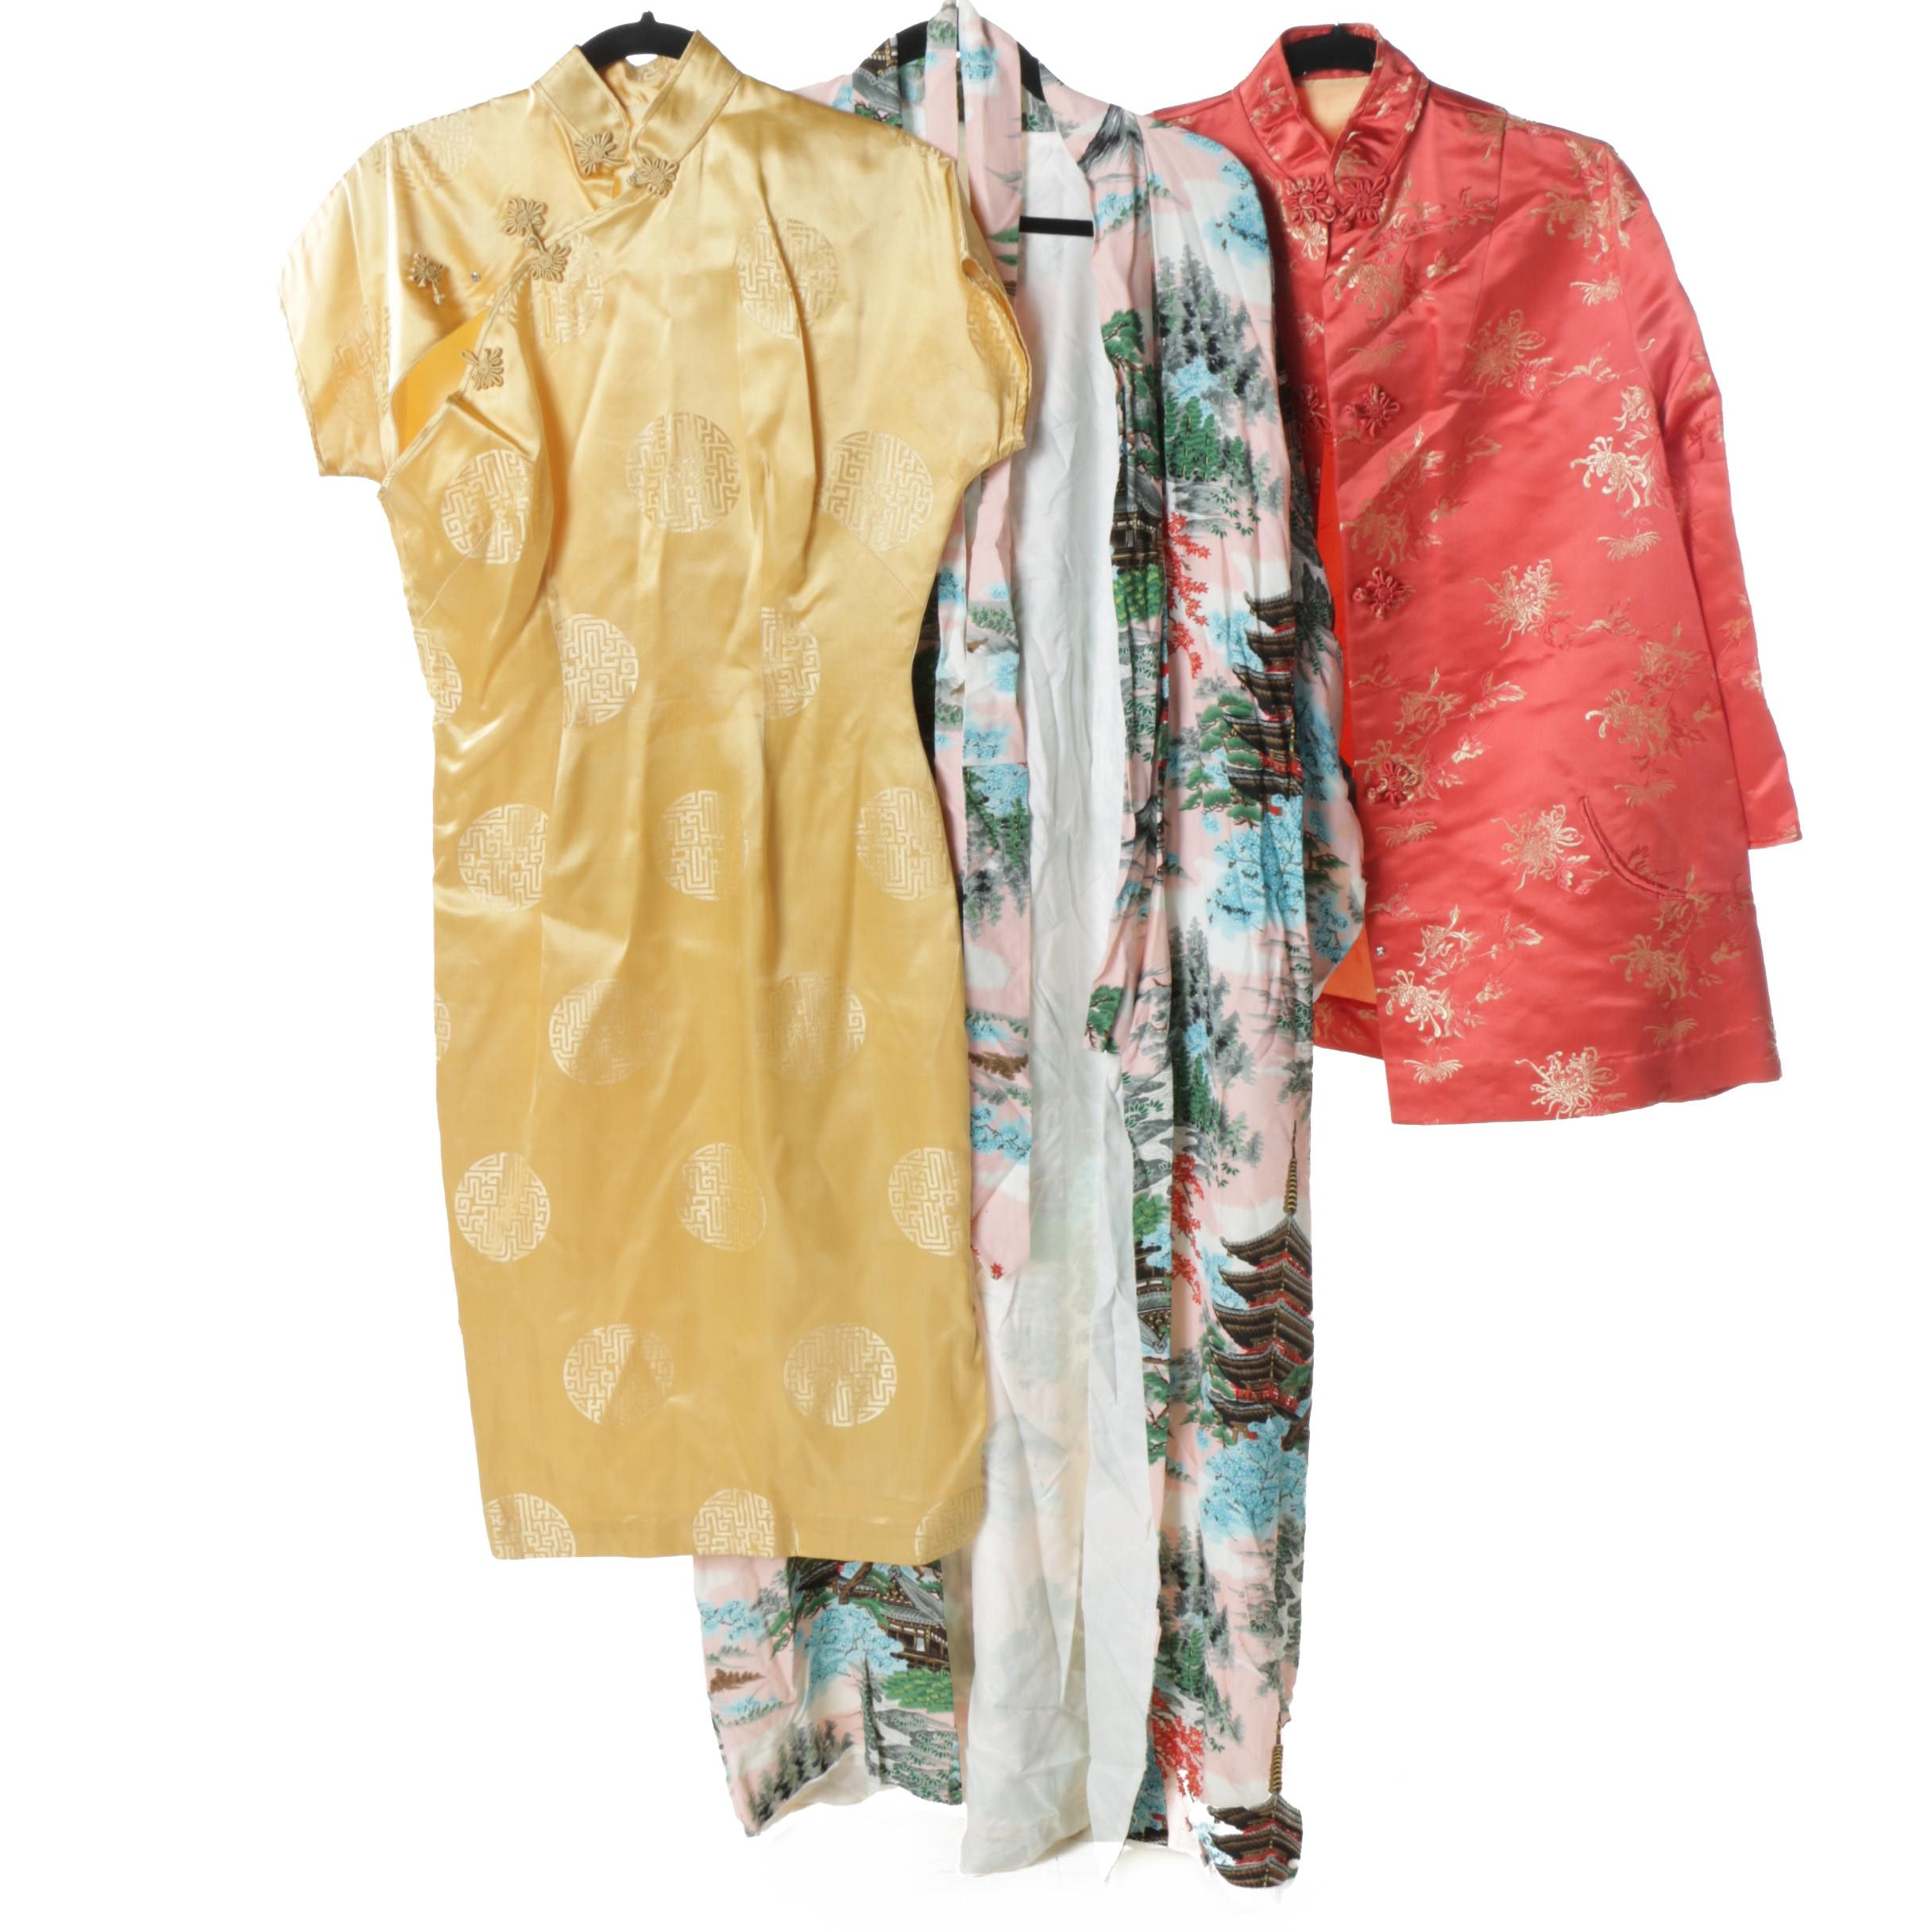 Women's Silk Robe, Embroidered Jacket and Cheongsam Dress